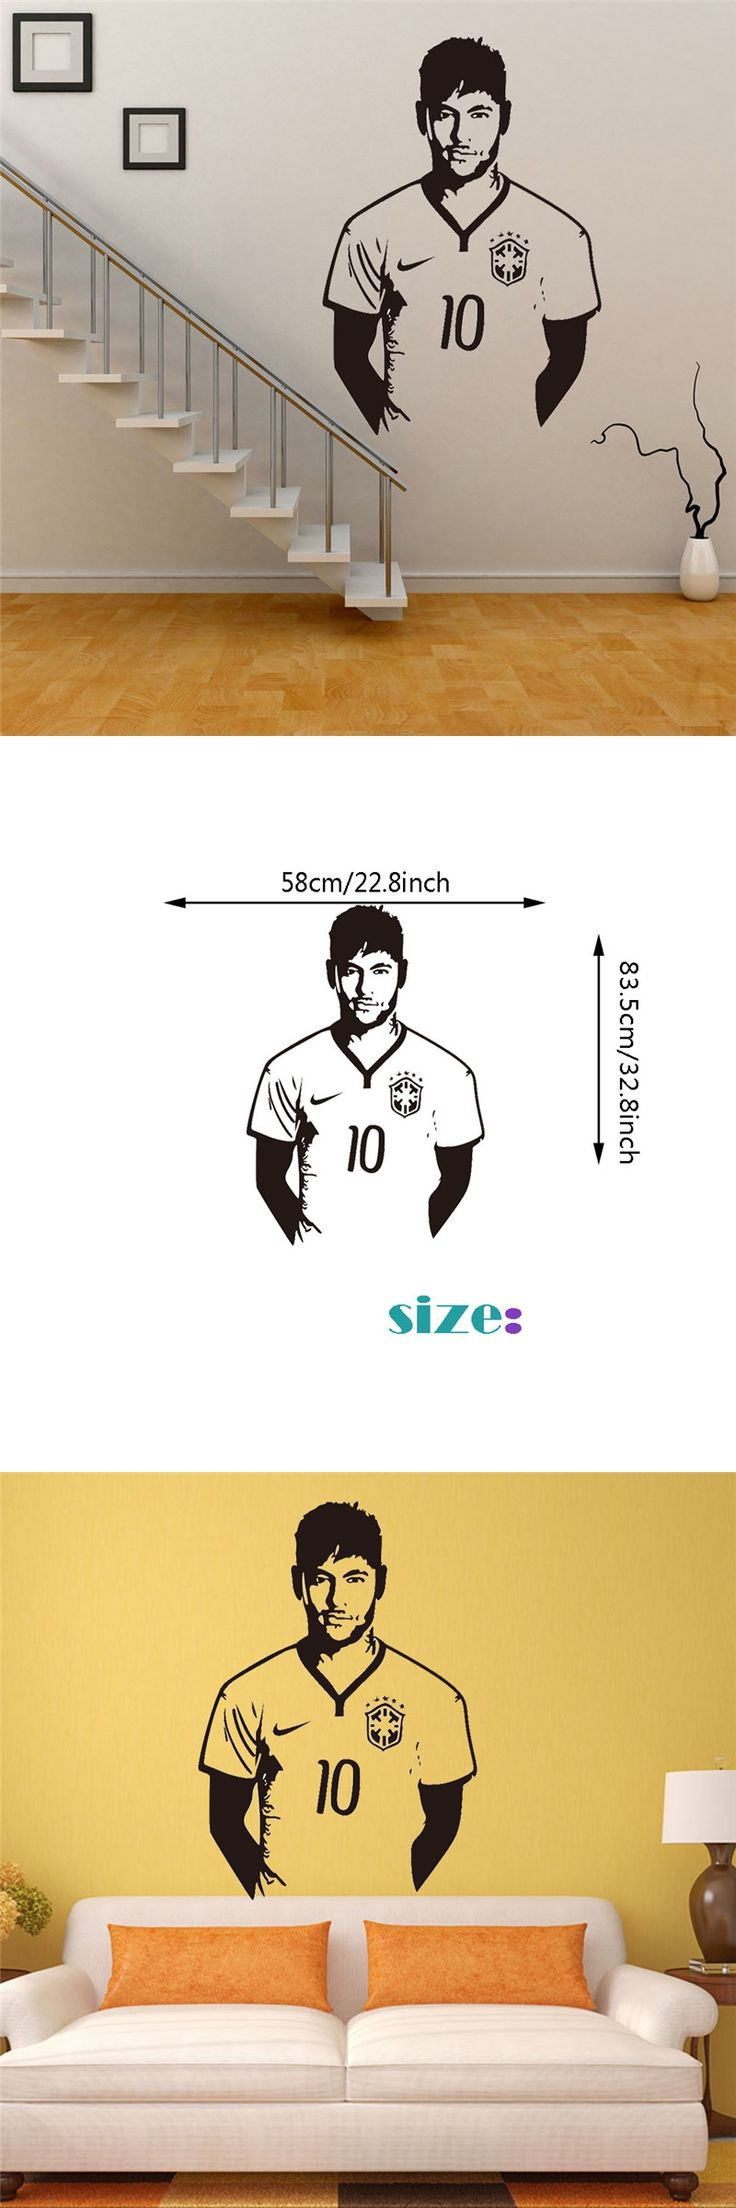 Handmade Graphic vinyl wall sticker of Football Star Neymar for kids room decorative wall decal mural vinilo pegatinas de pared